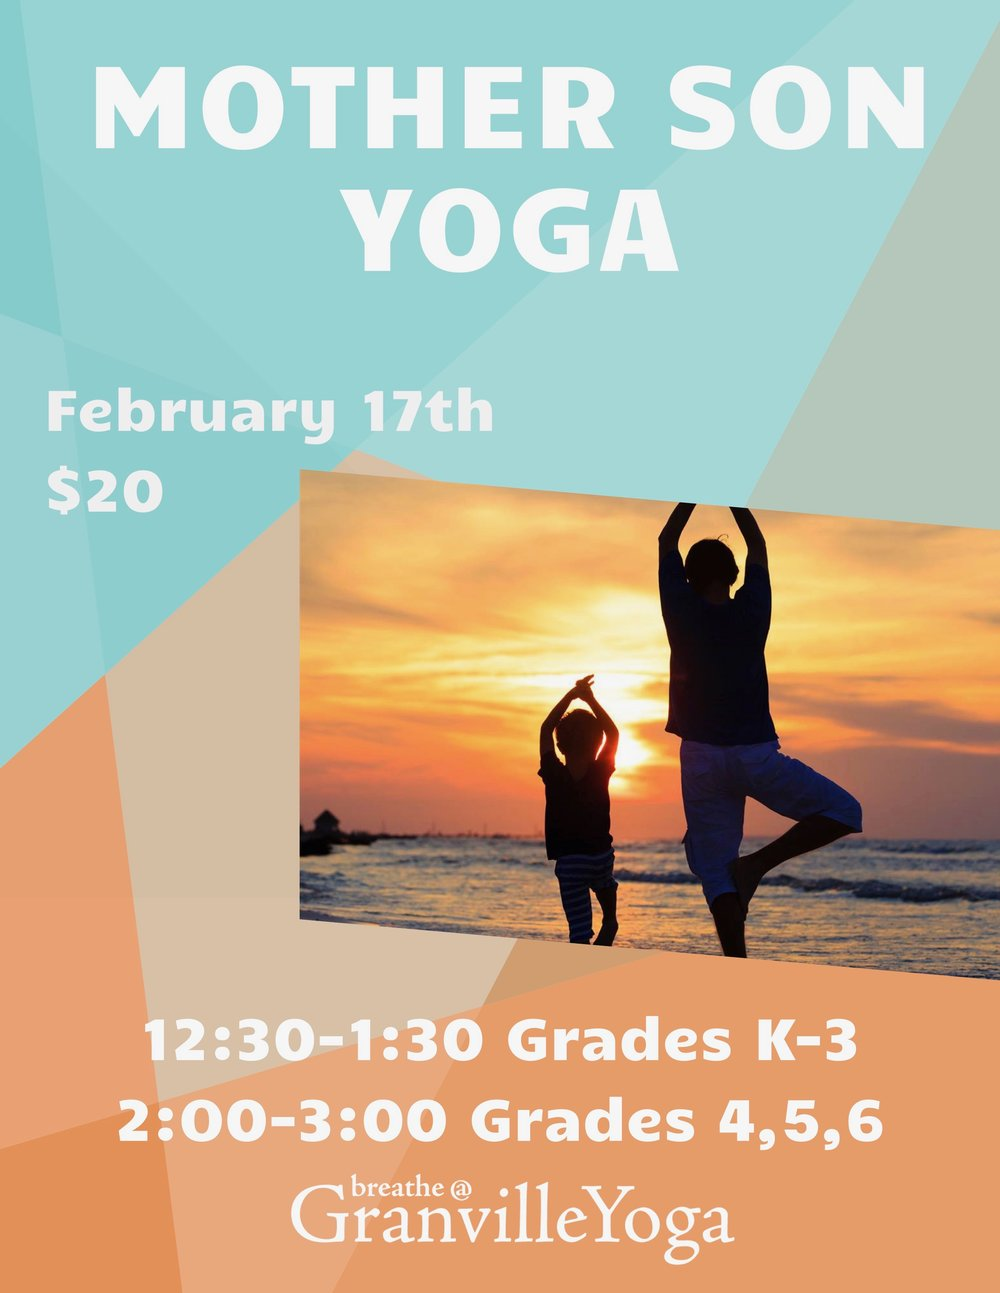 Back by popular request! Mom and Son Yoga with Karen Scott!